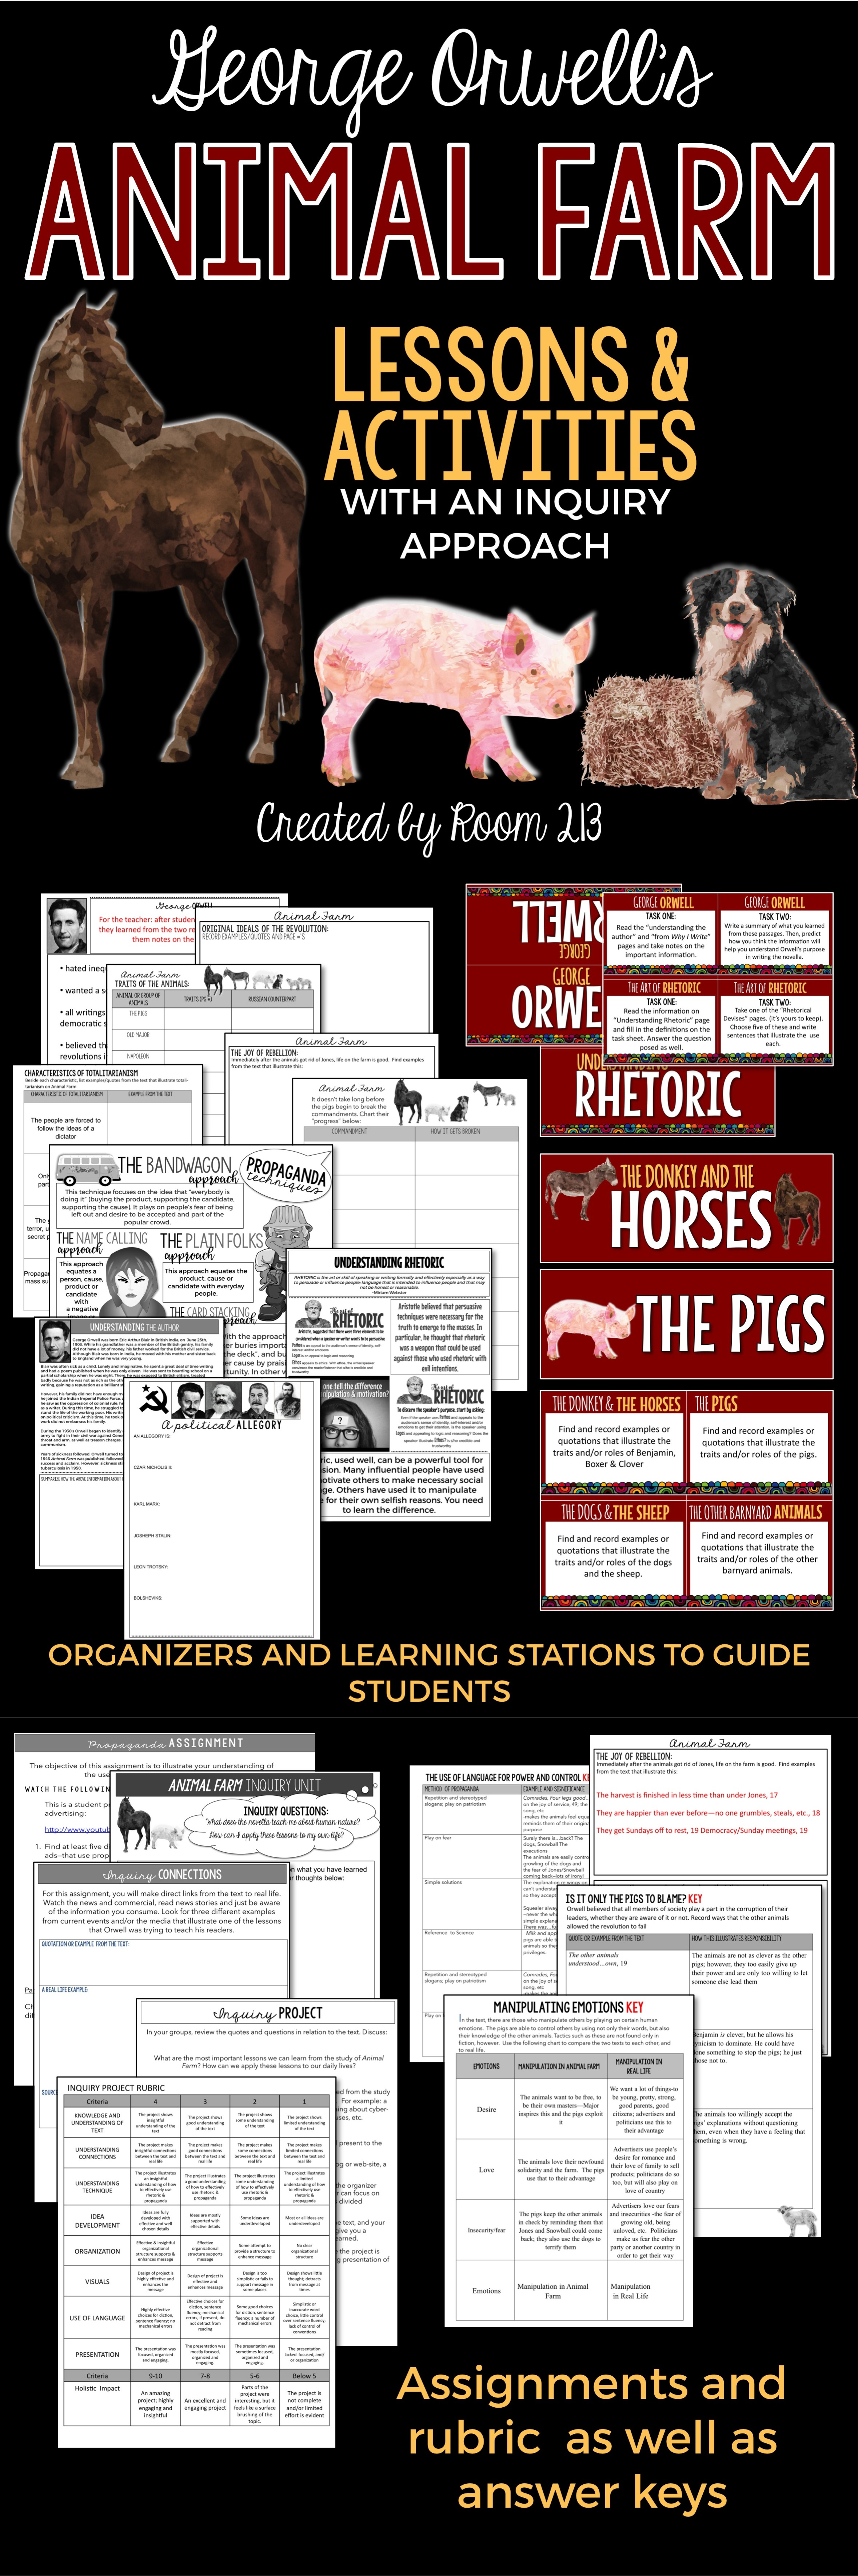 Animal Farm Activities Amp Lessons With An Inquiry Approach